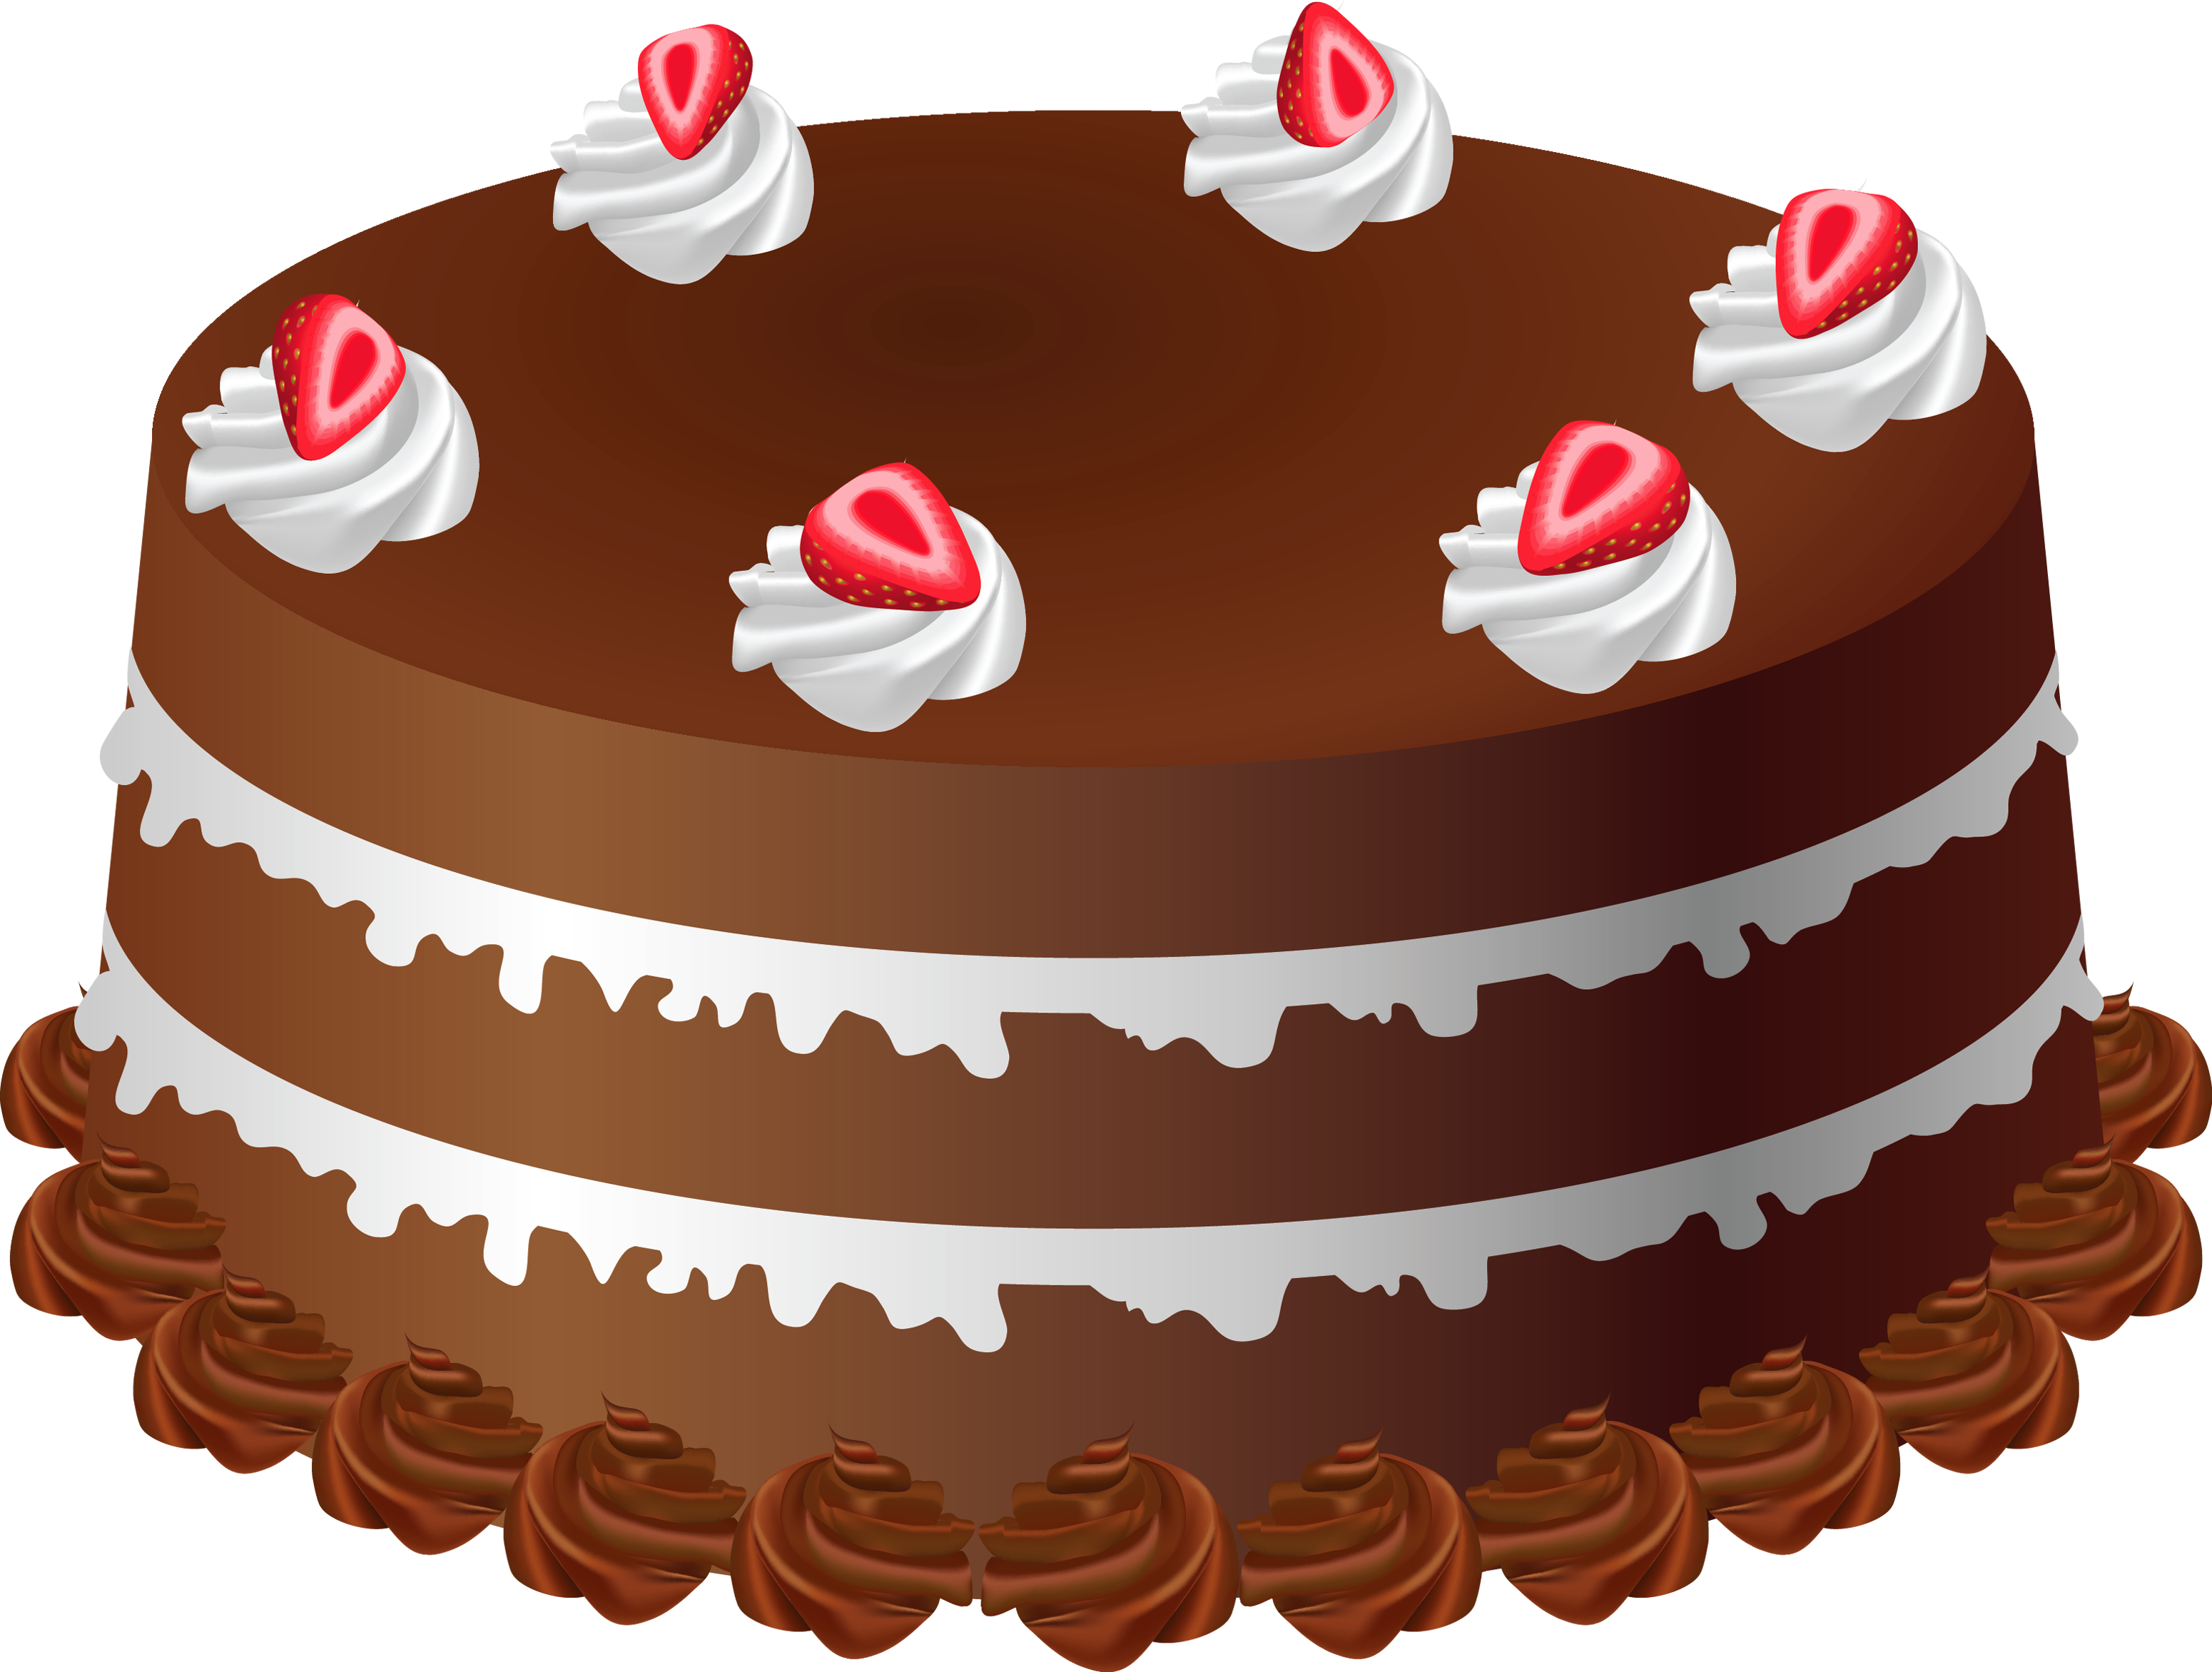 Clipart cake baked goods. Chocolate art png large